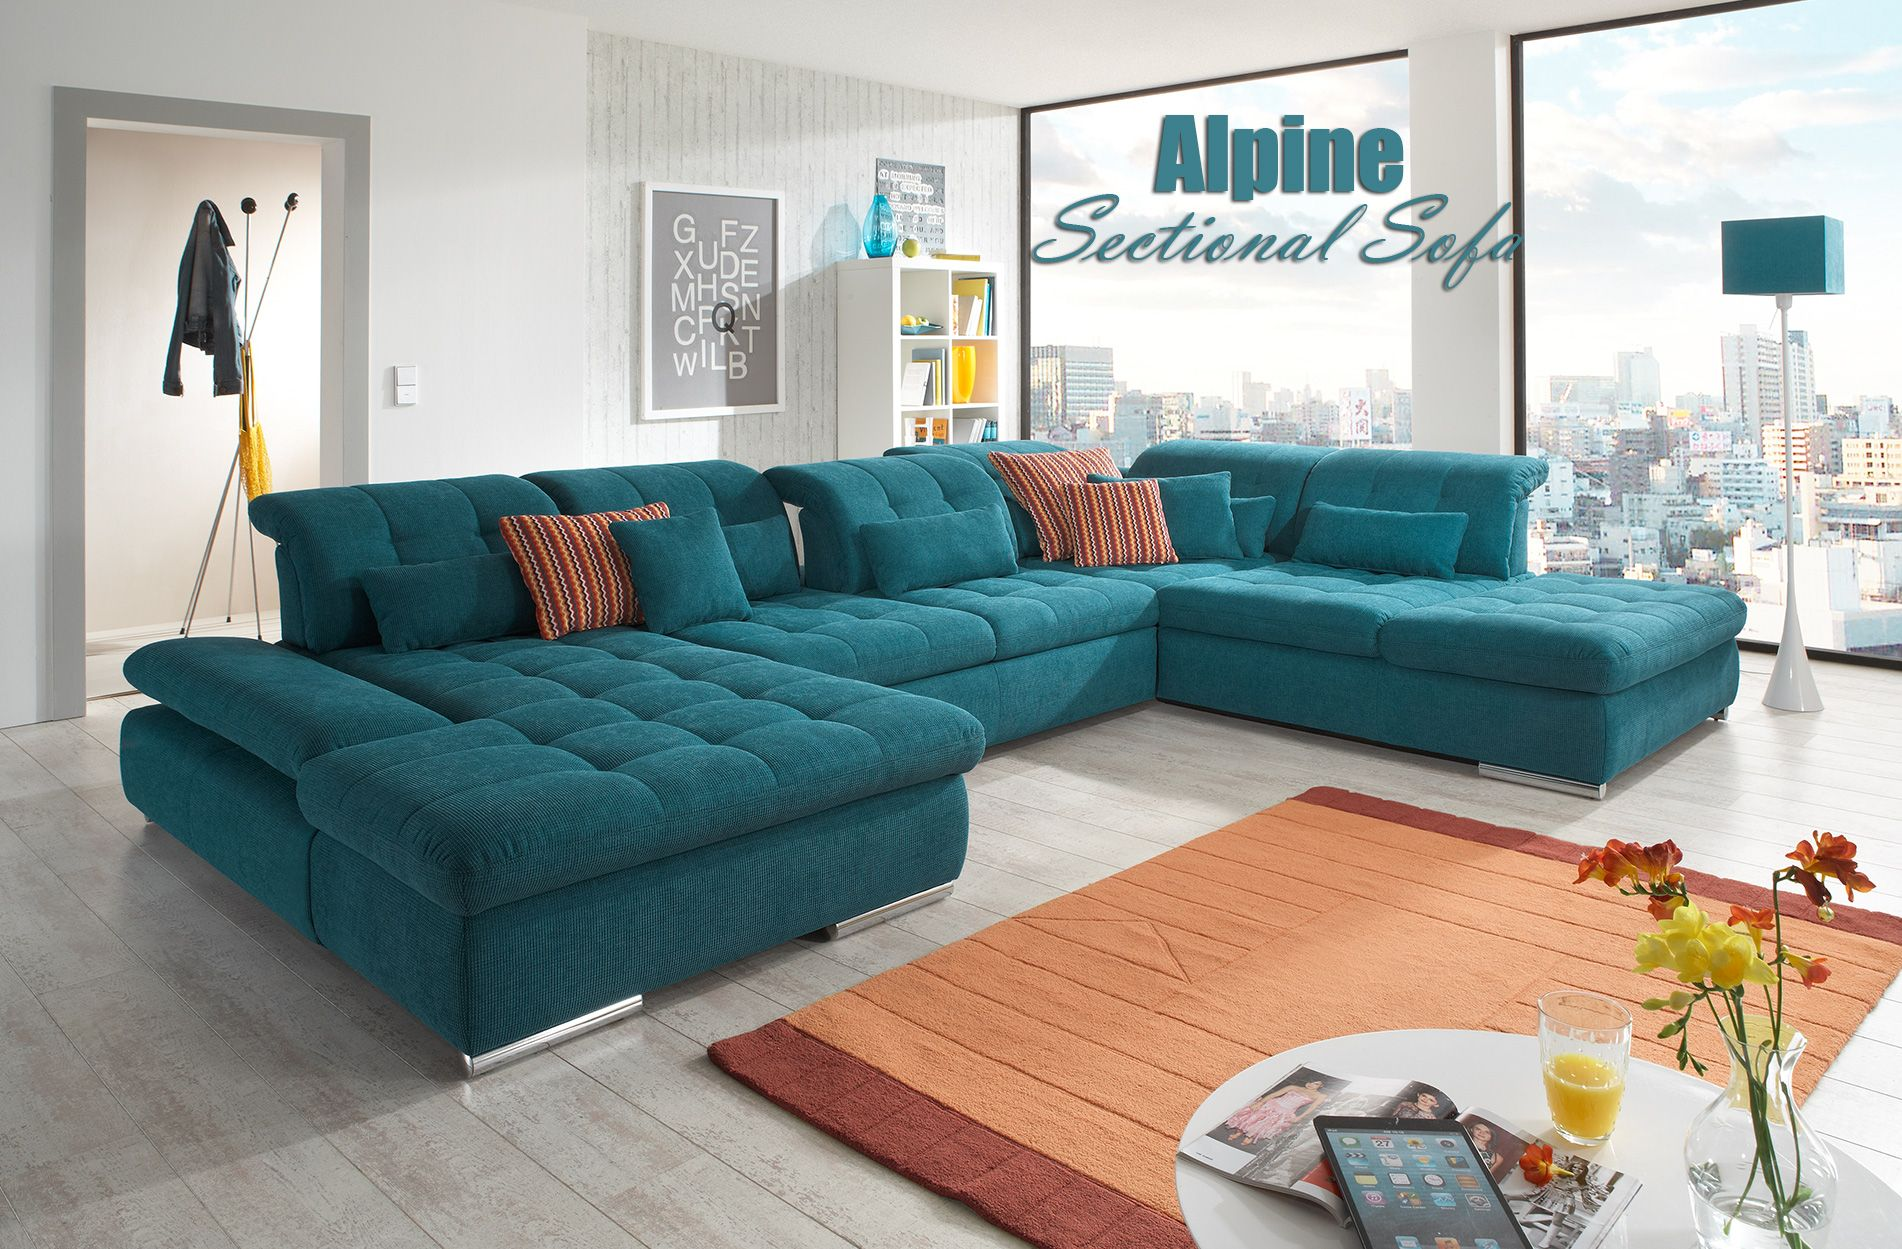 Pin By Selbicconsult On Bedroom Sofa Pinterest Sofa Sectional